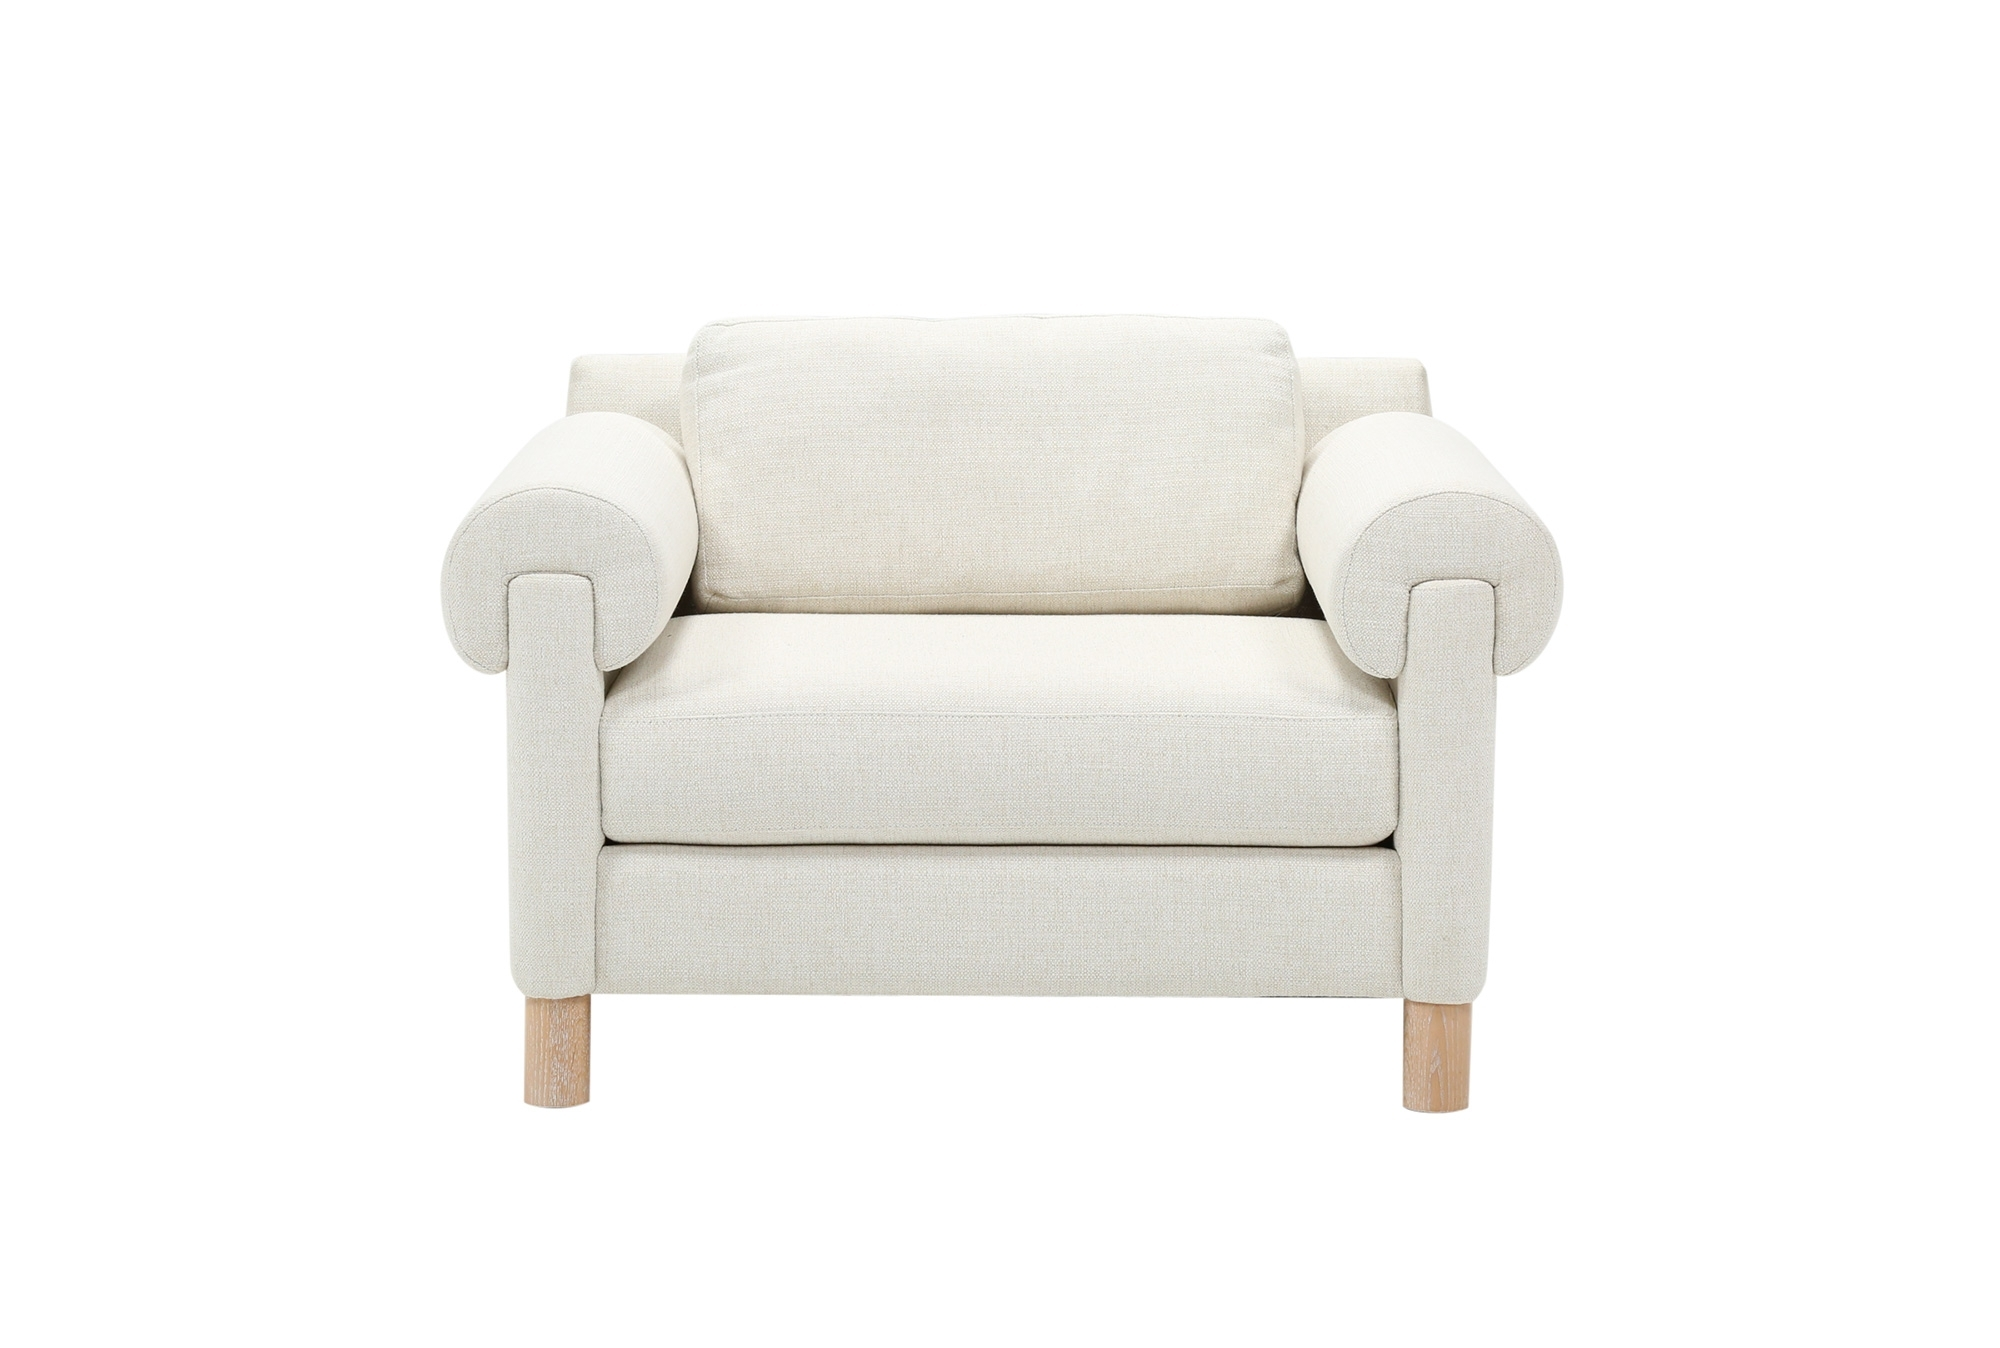 Nate Berkus, Jeremiah Brent For Living Spaces Furniture | People With Regard To Soane 3 Piece Sectionals By Nate Berkus And Jeremiah Brent (Image 15 of 25)